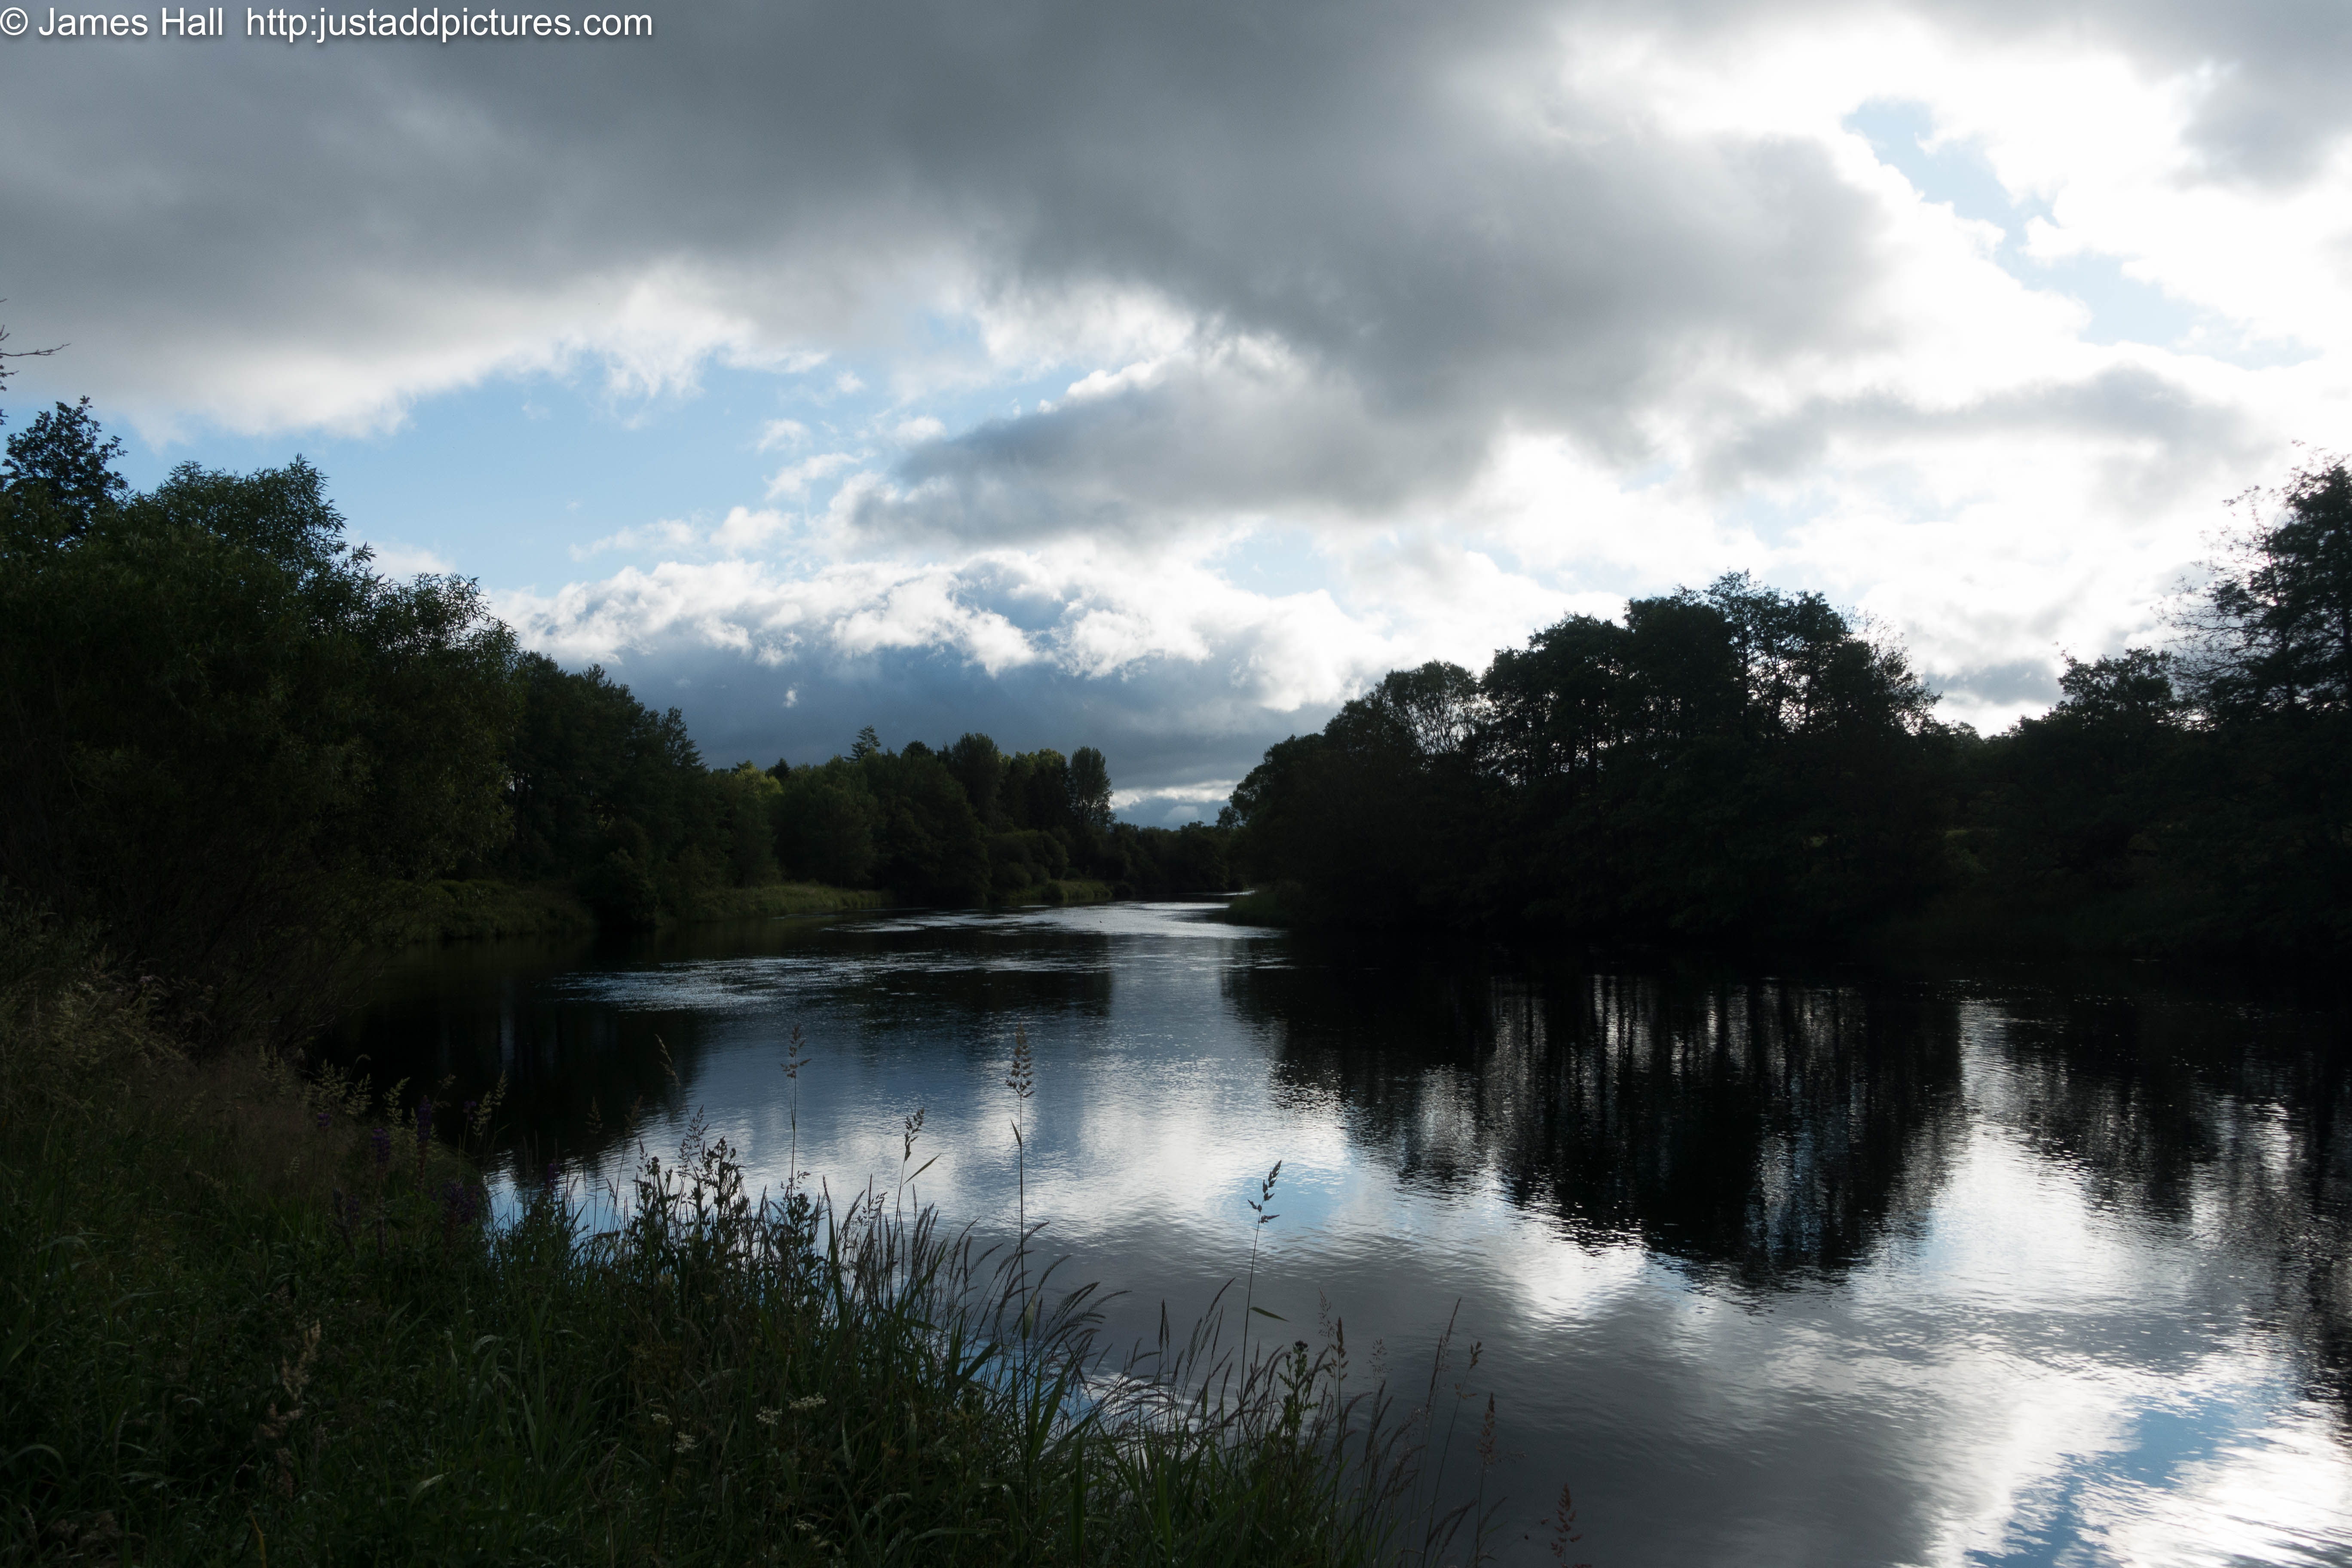 The River Spey at Grantown-on-Spey